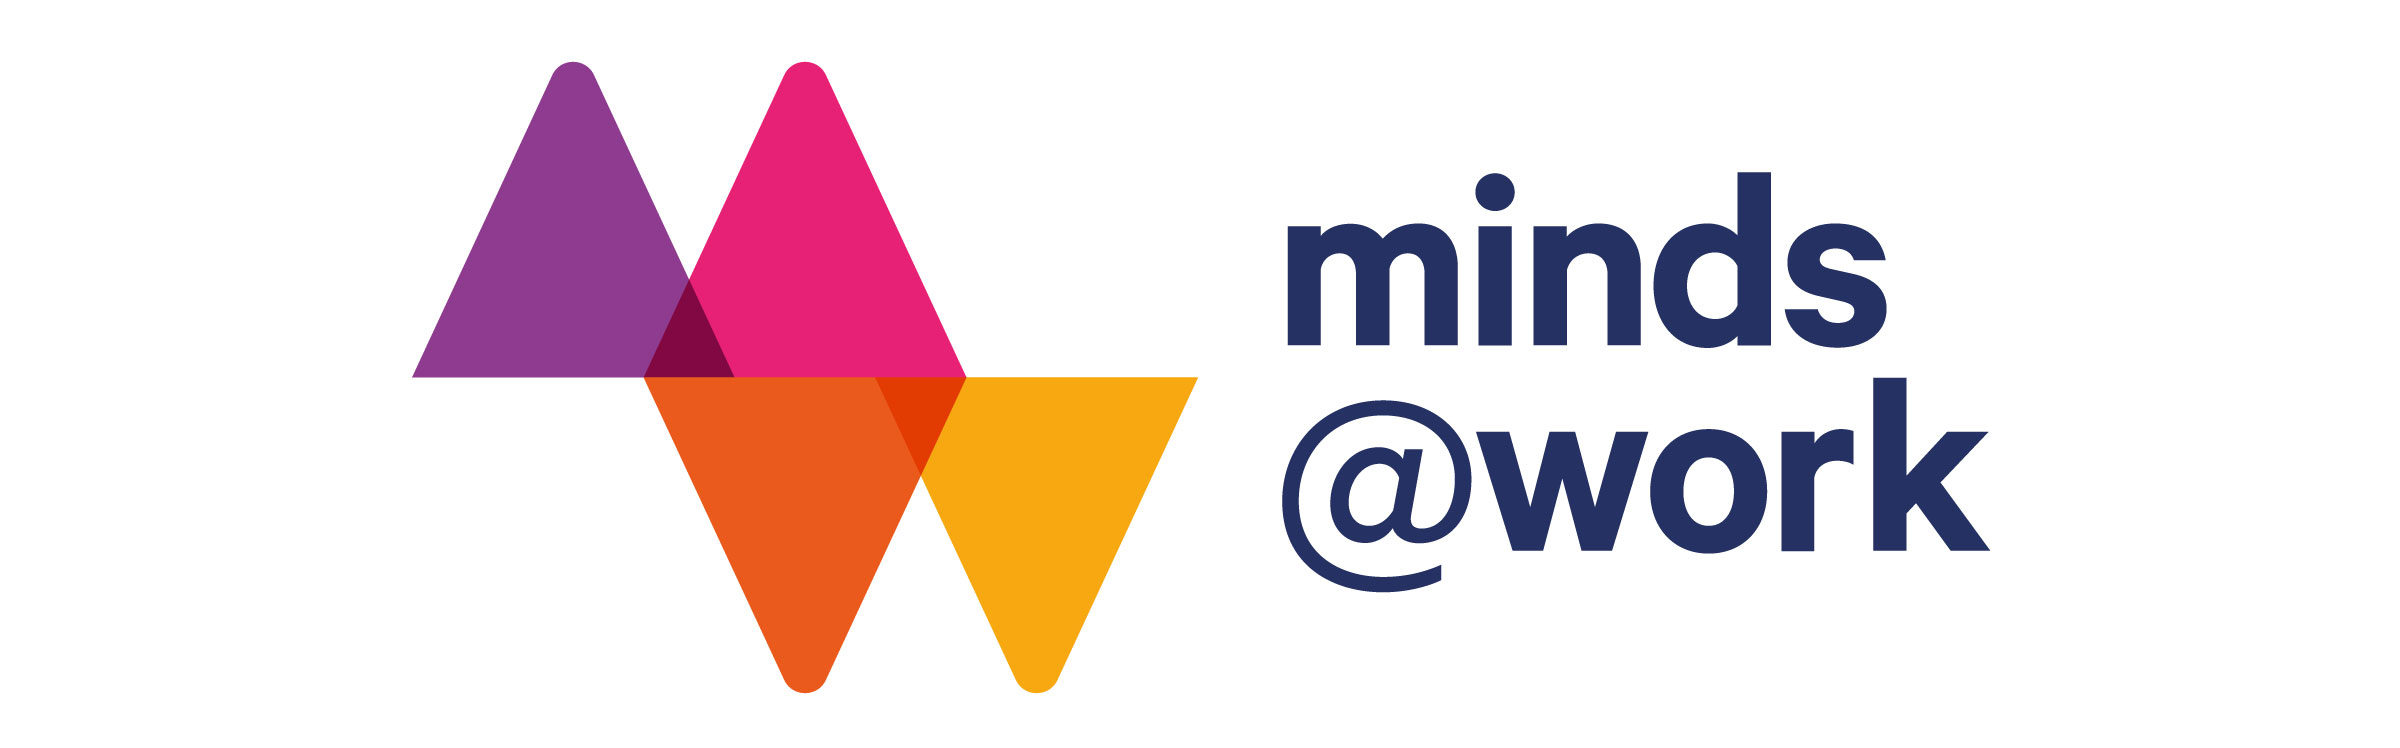 Mindsatwork_horizontal-logo